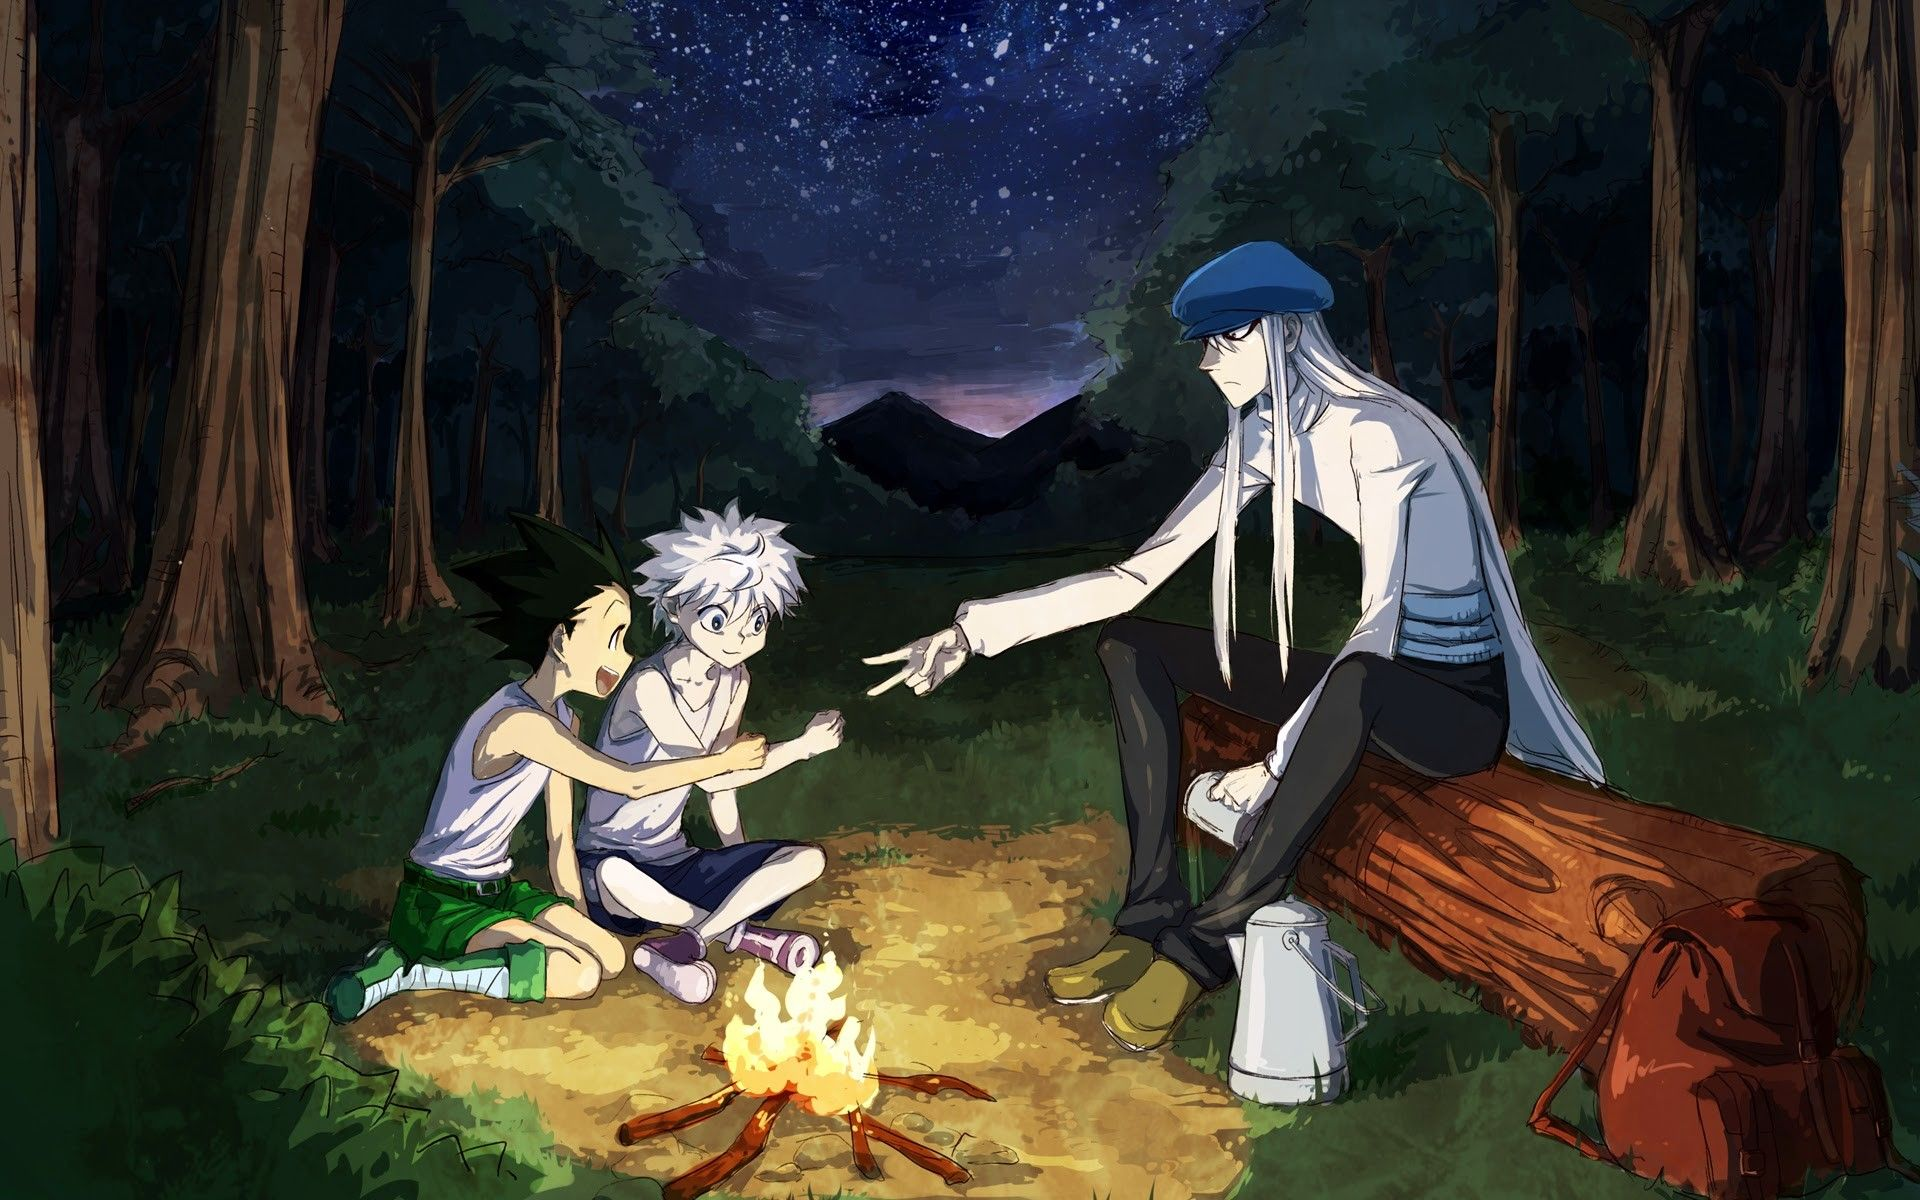 1920x1200 Gon Killua Janken Hunter X Hunter 2011 Anime Hd